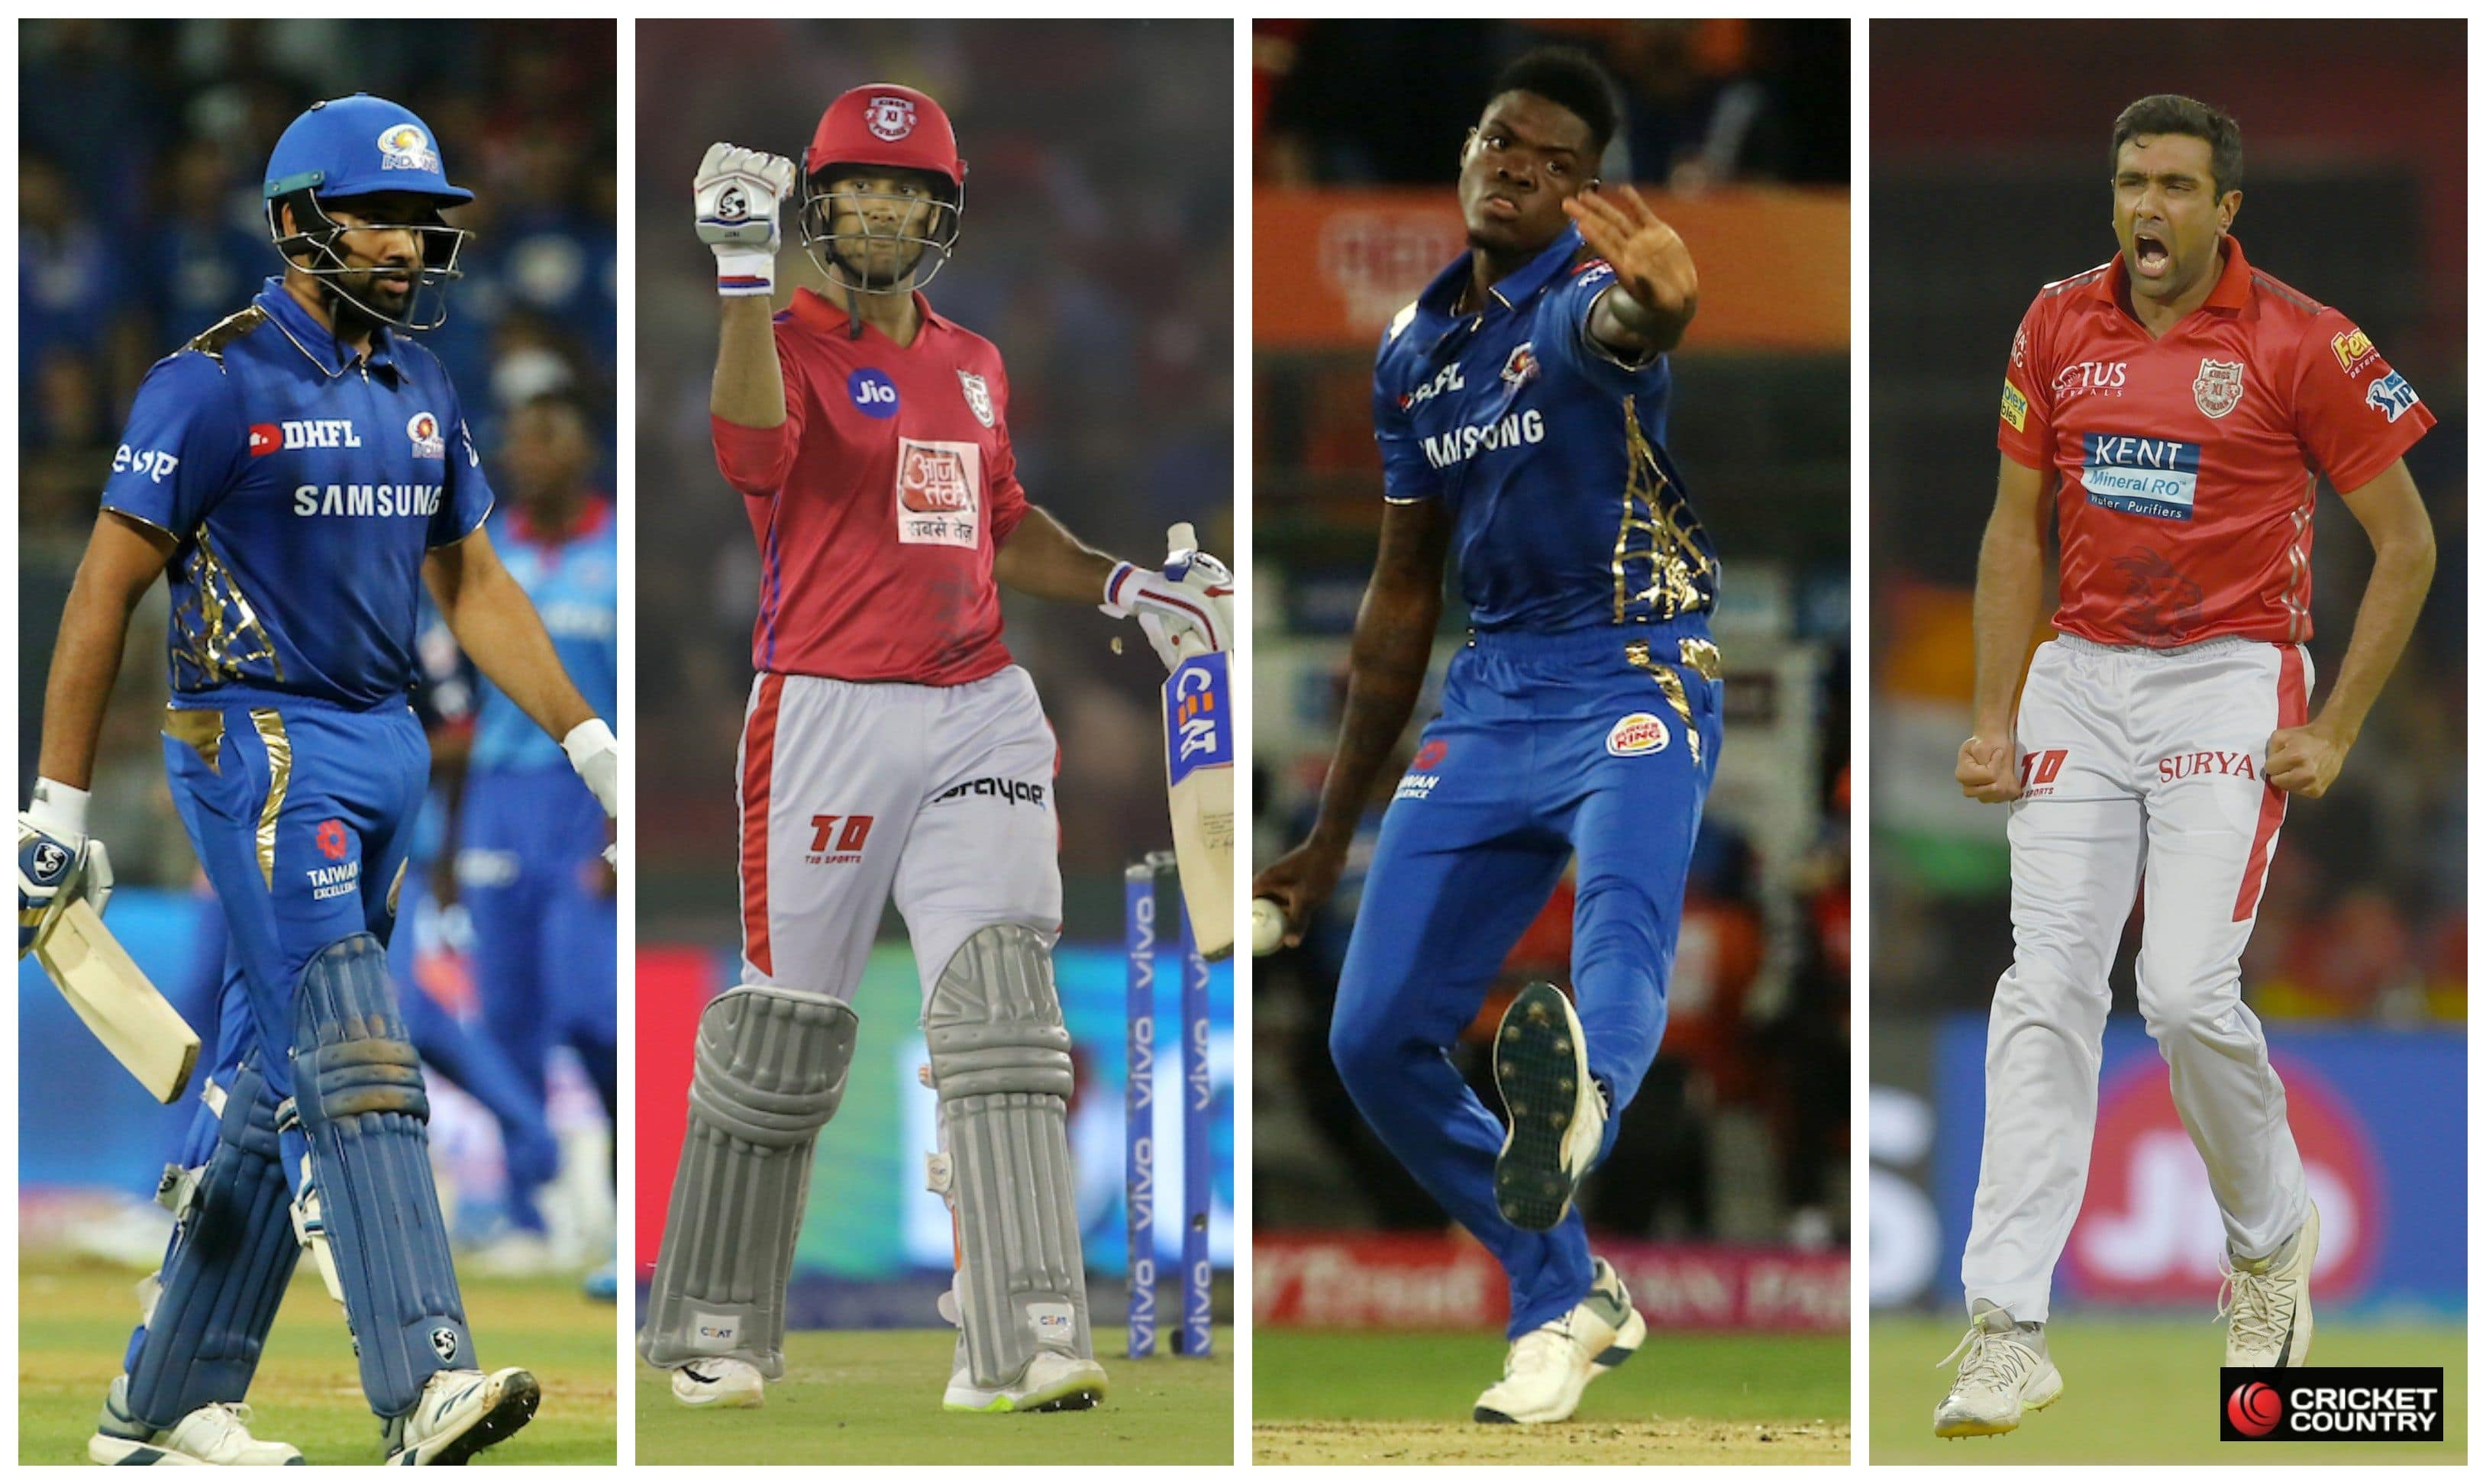 MI vs KXIP: What can we expect to see?